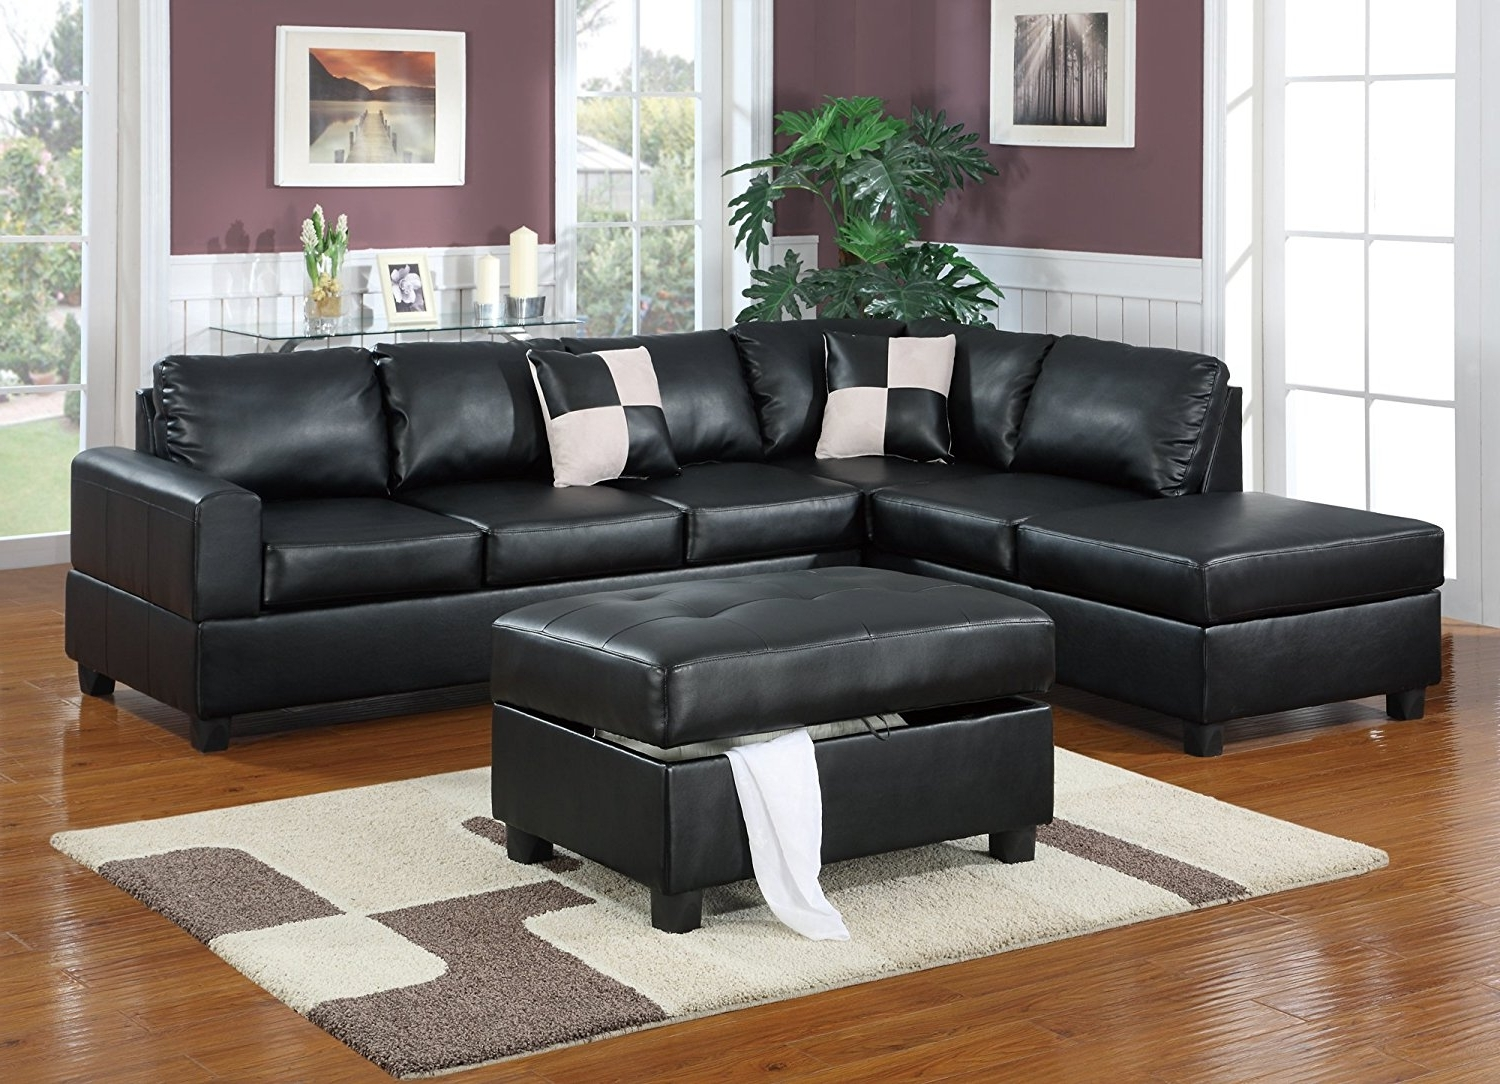 Amazon: Bobkona Hampshire Collection 3 Piece Sectional Sofa For 2017 Black Sectional Sofas (View 1 of 15)